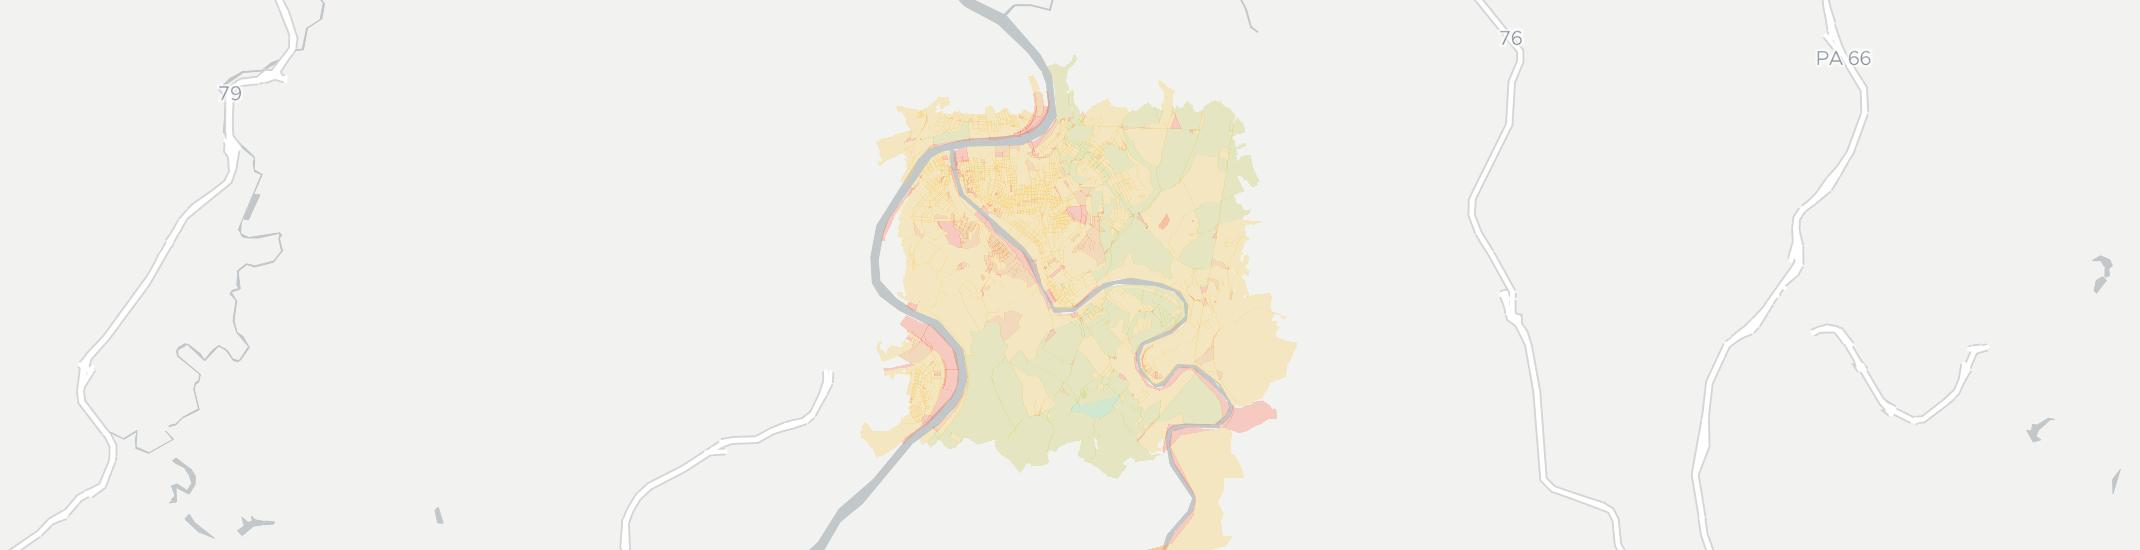 Mckeesport Internet Competition Map. Click for interactive map.